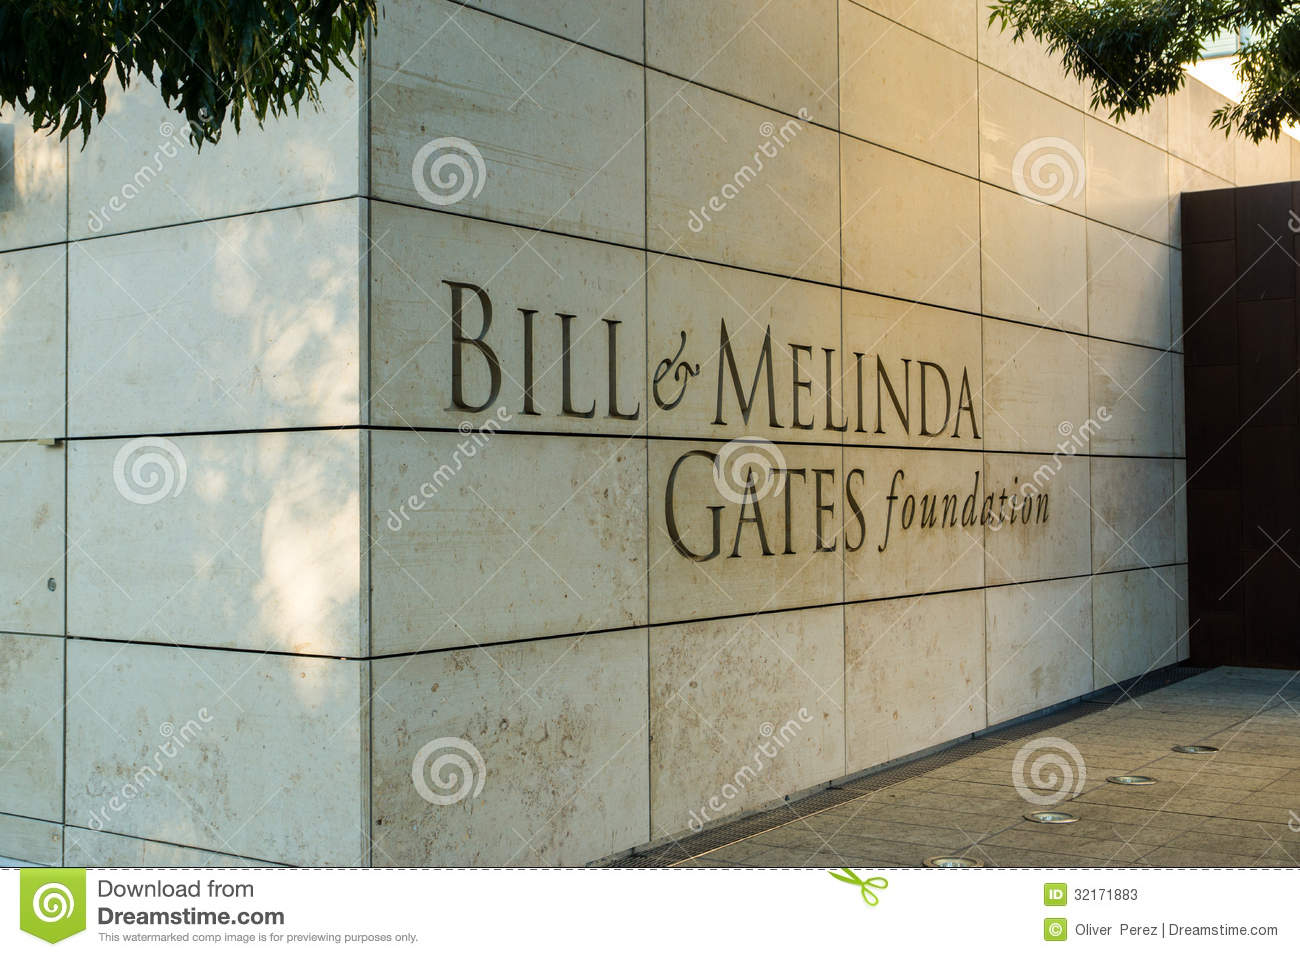 Bill e Melinda Gates Foundation